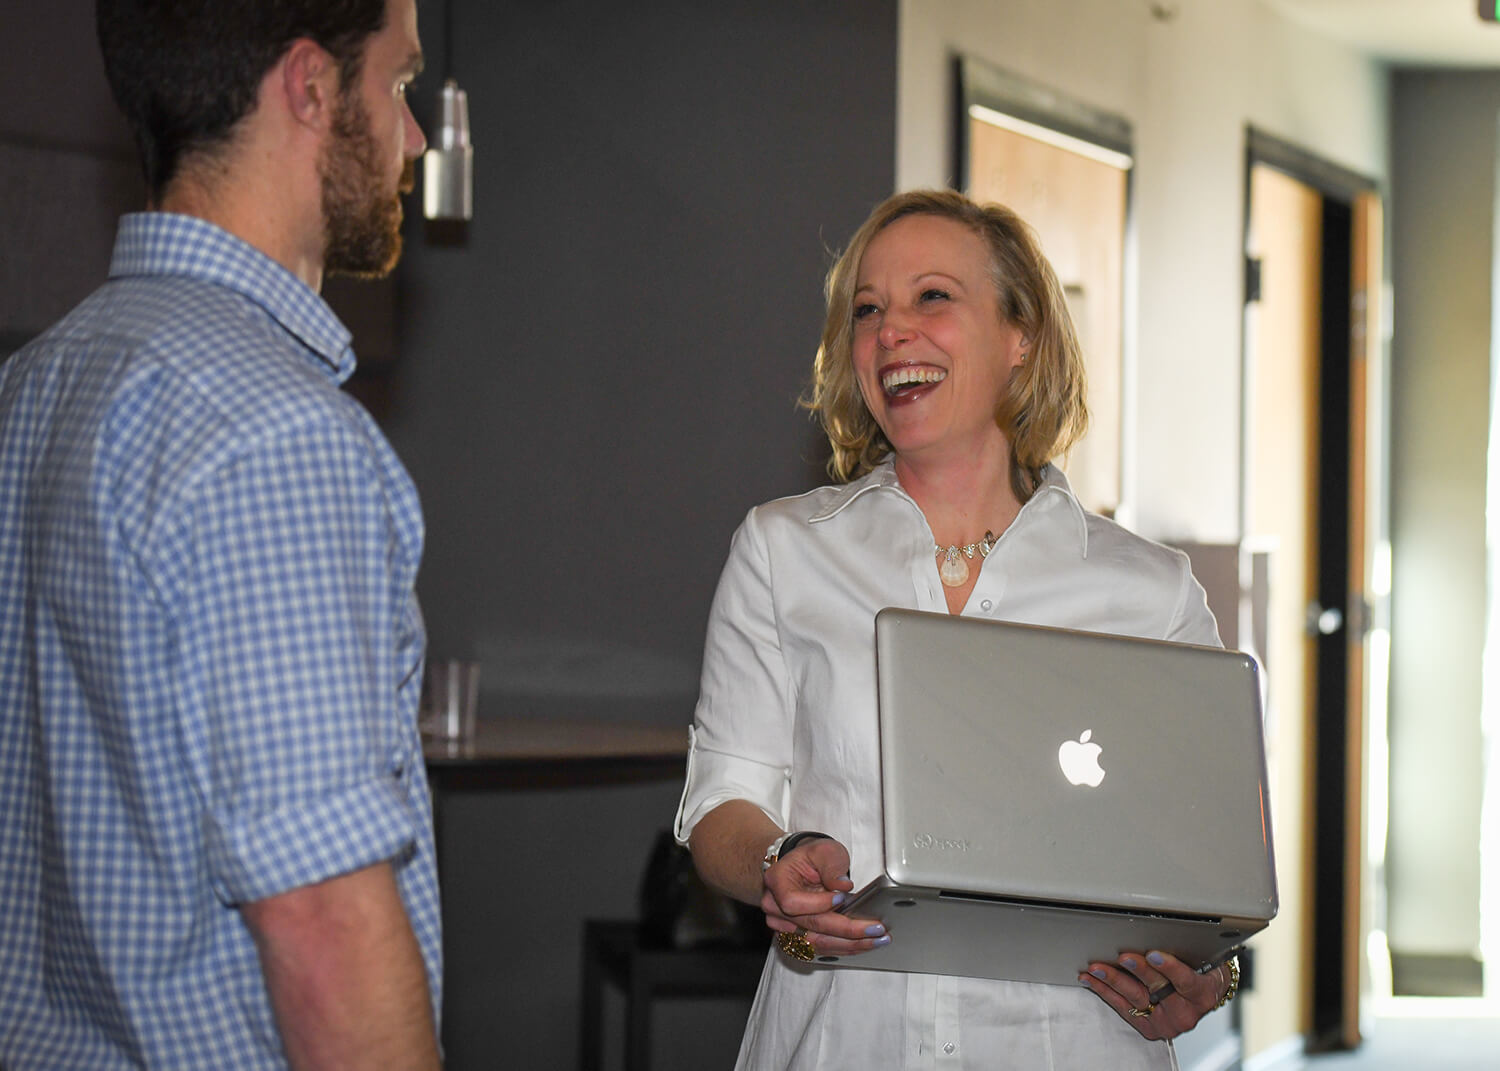 Cindy laughing holding laptop with client